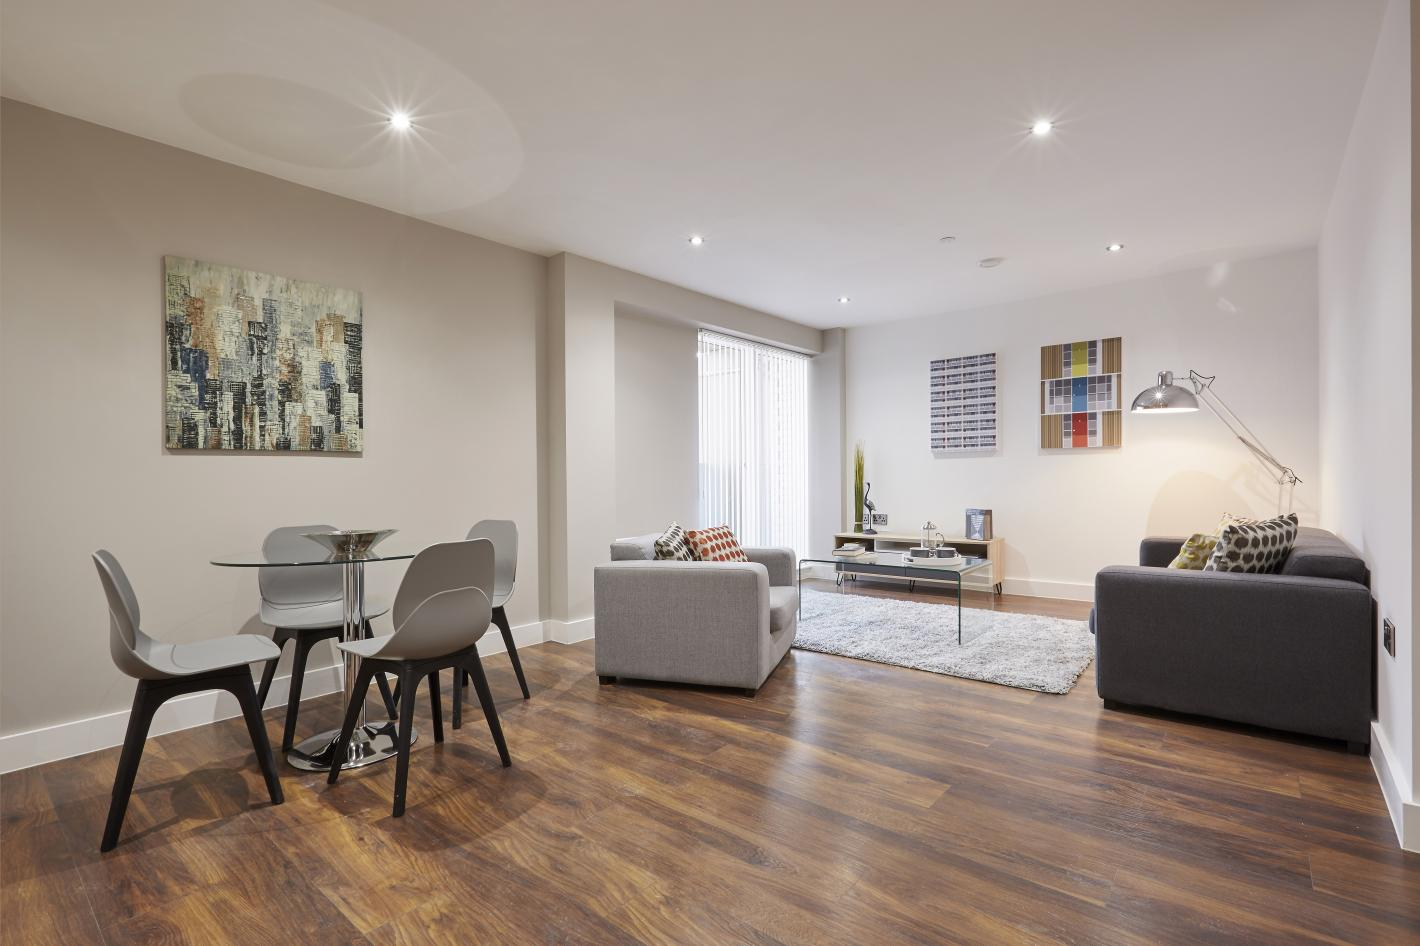 lounge and dining area in buy to let property, spotlighted room with single grey arm chair, dark grey double arm chair, dark wooden laminate flooring and glass dining table with grey chairs